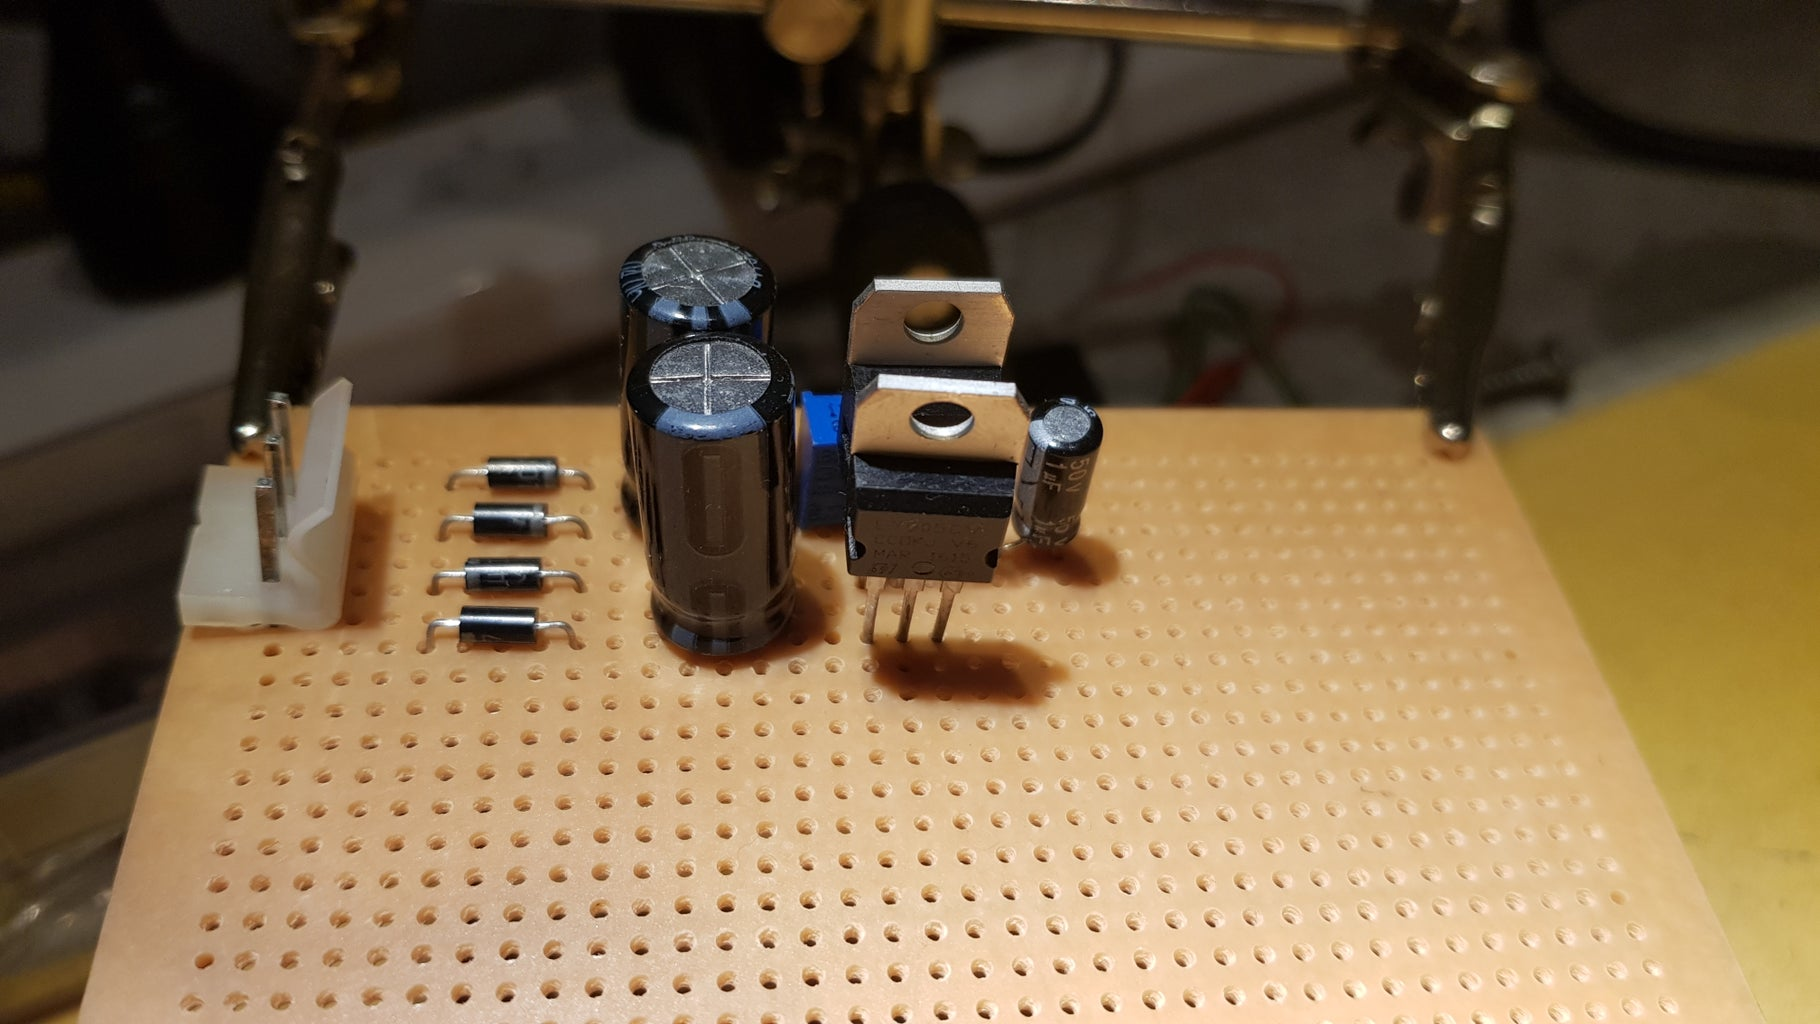 Mounting Components